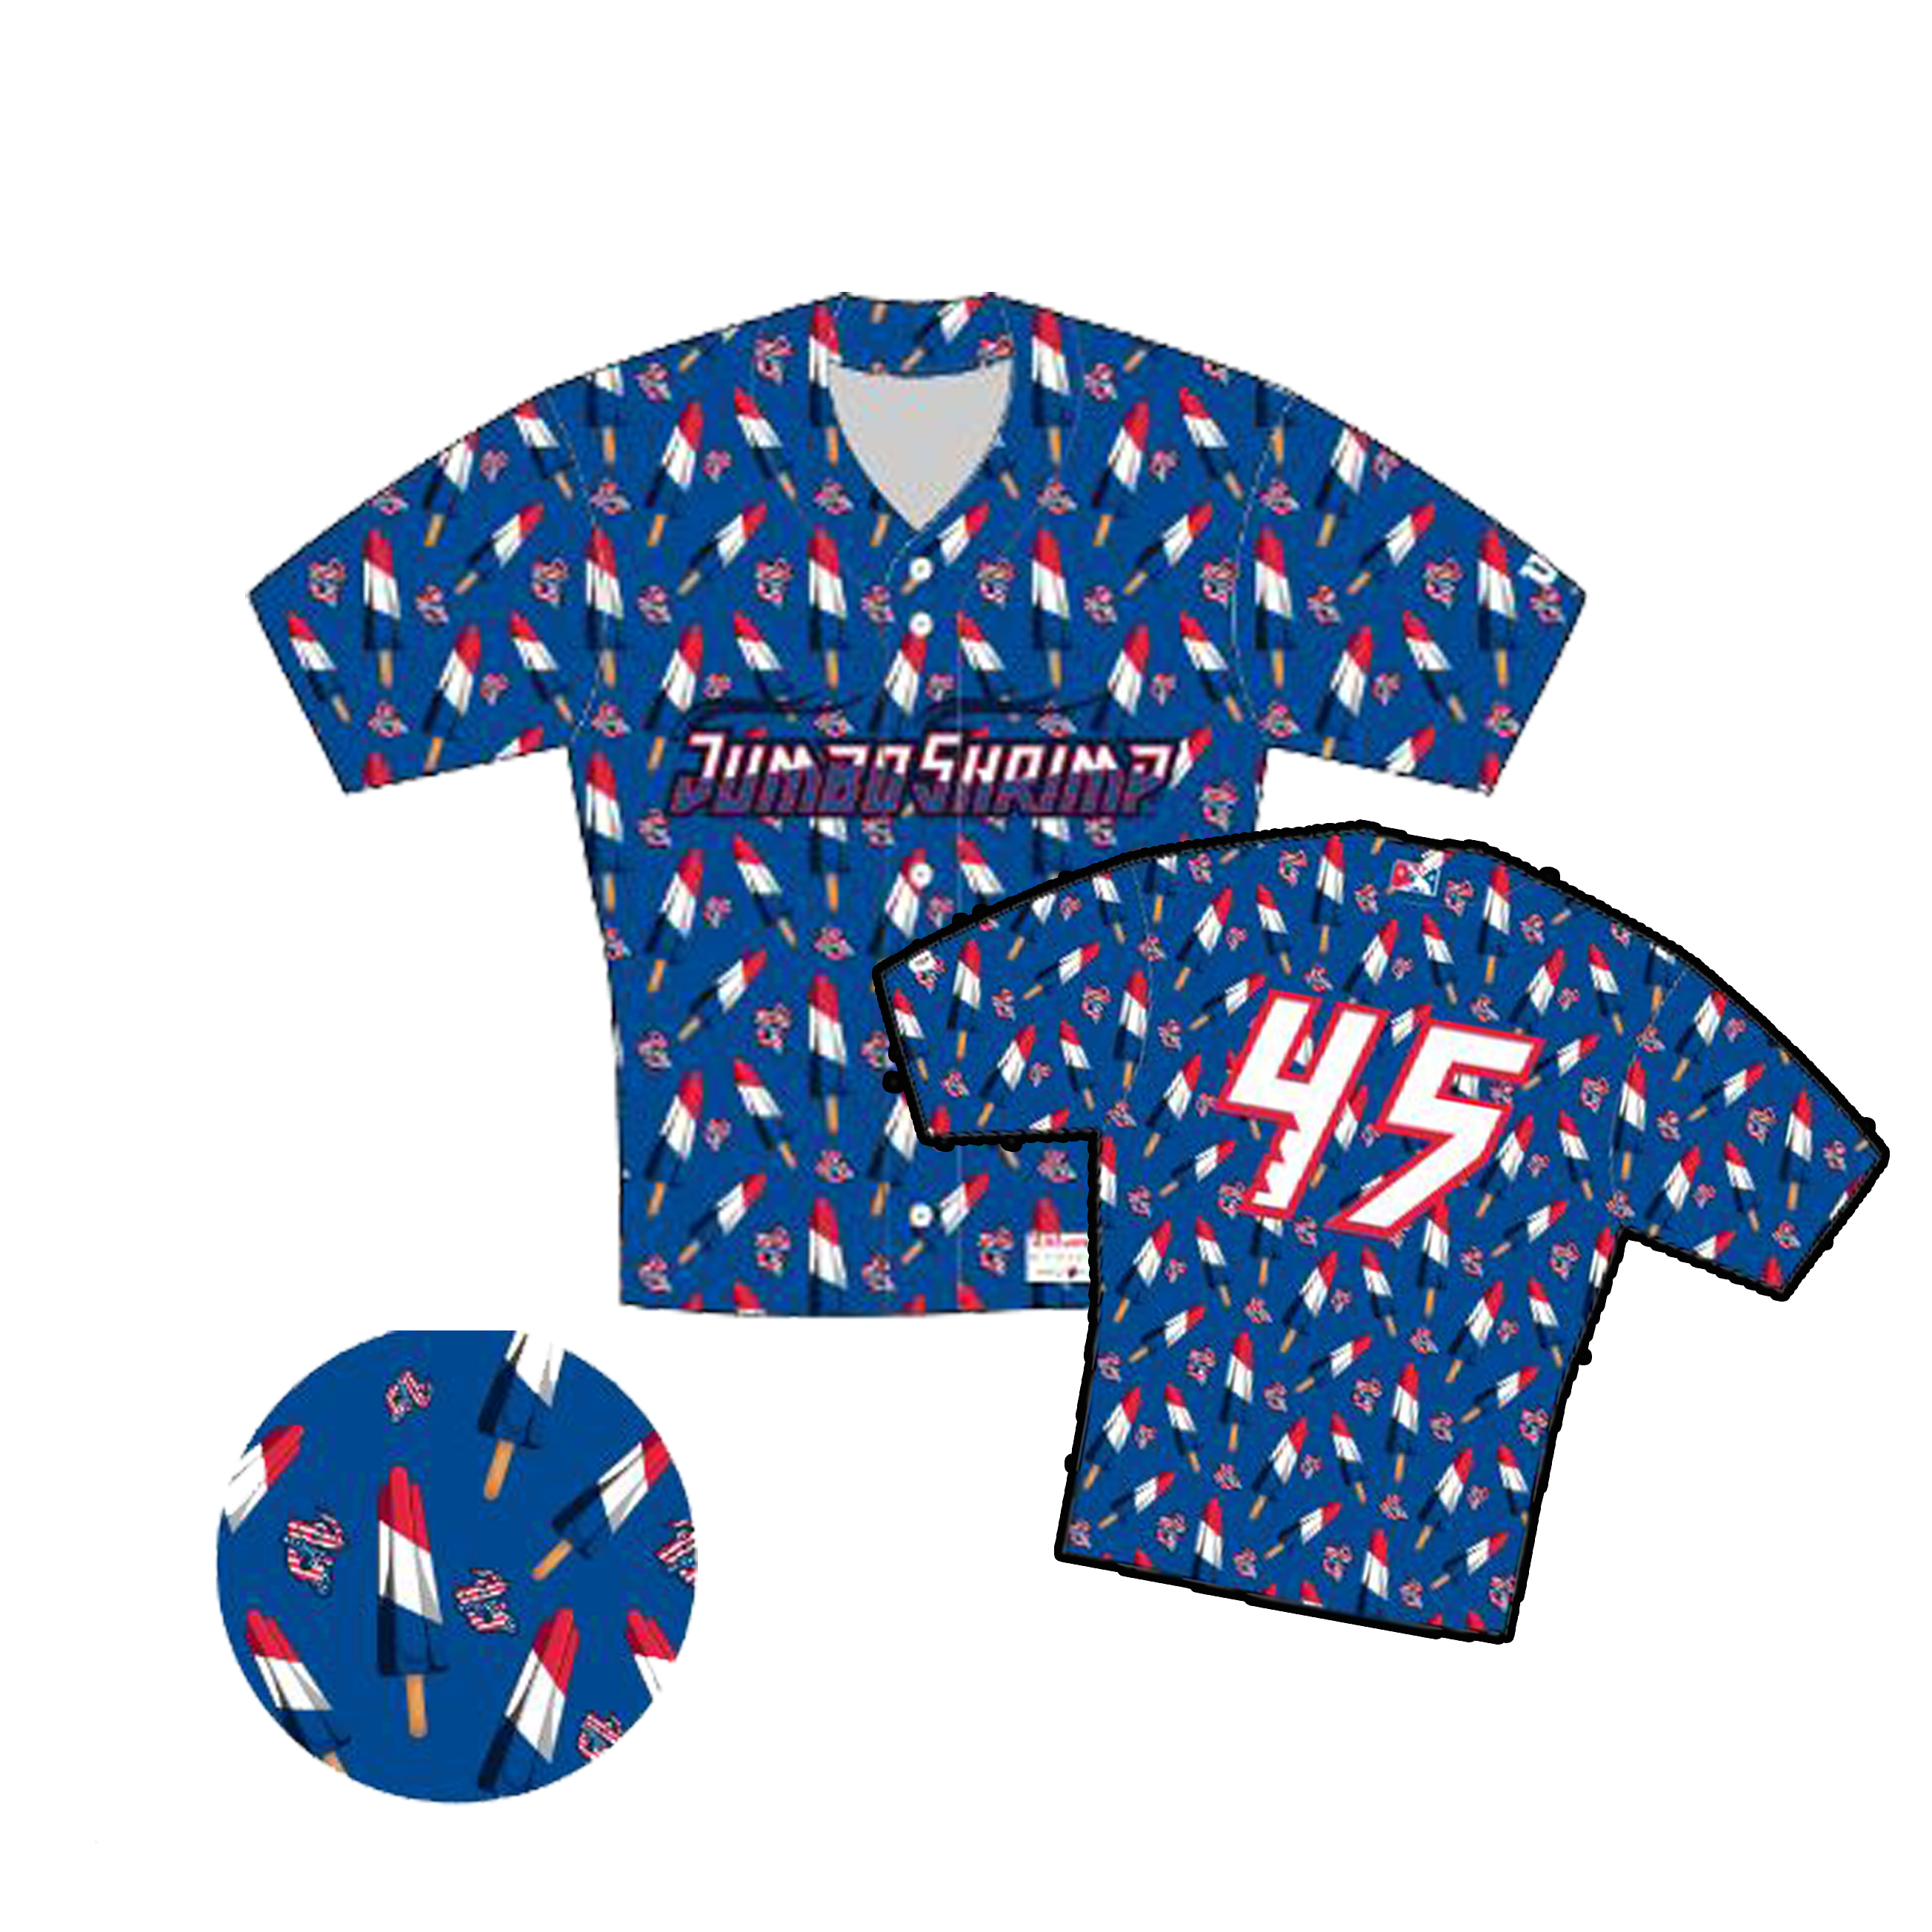 0860d6ff767 At any rate, log on to jaxshrimp.com to bid on these one of a kind July 3rd  jerseys!!   More Info